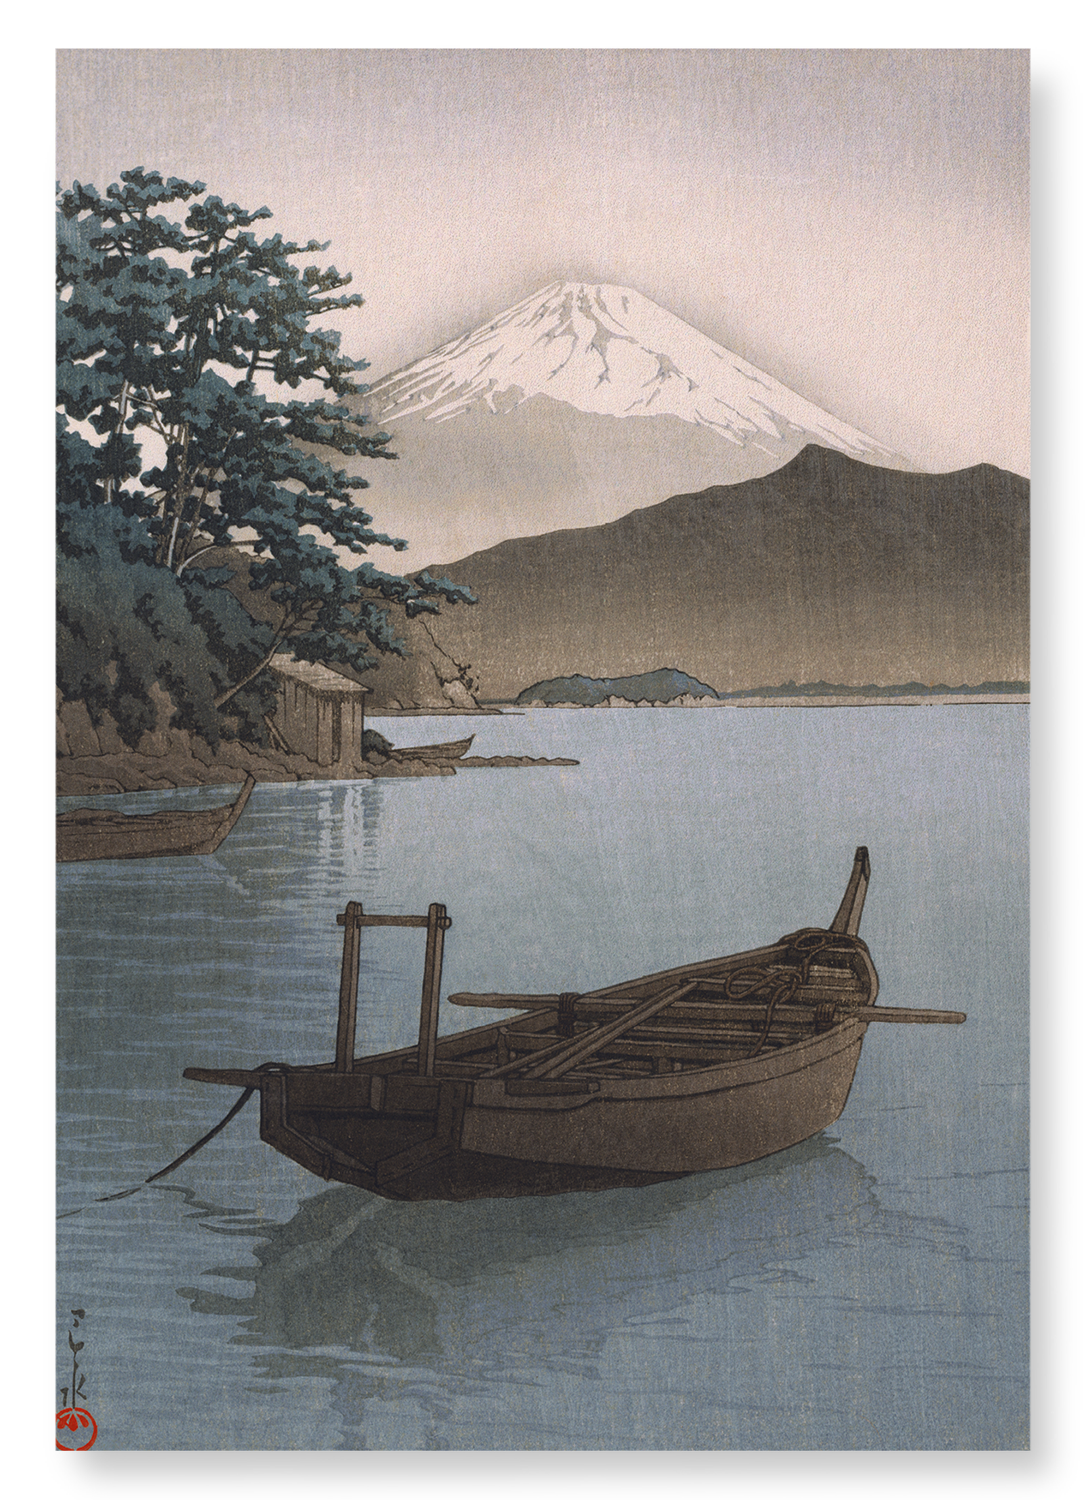 Mount fuji and boat: 2xPrints